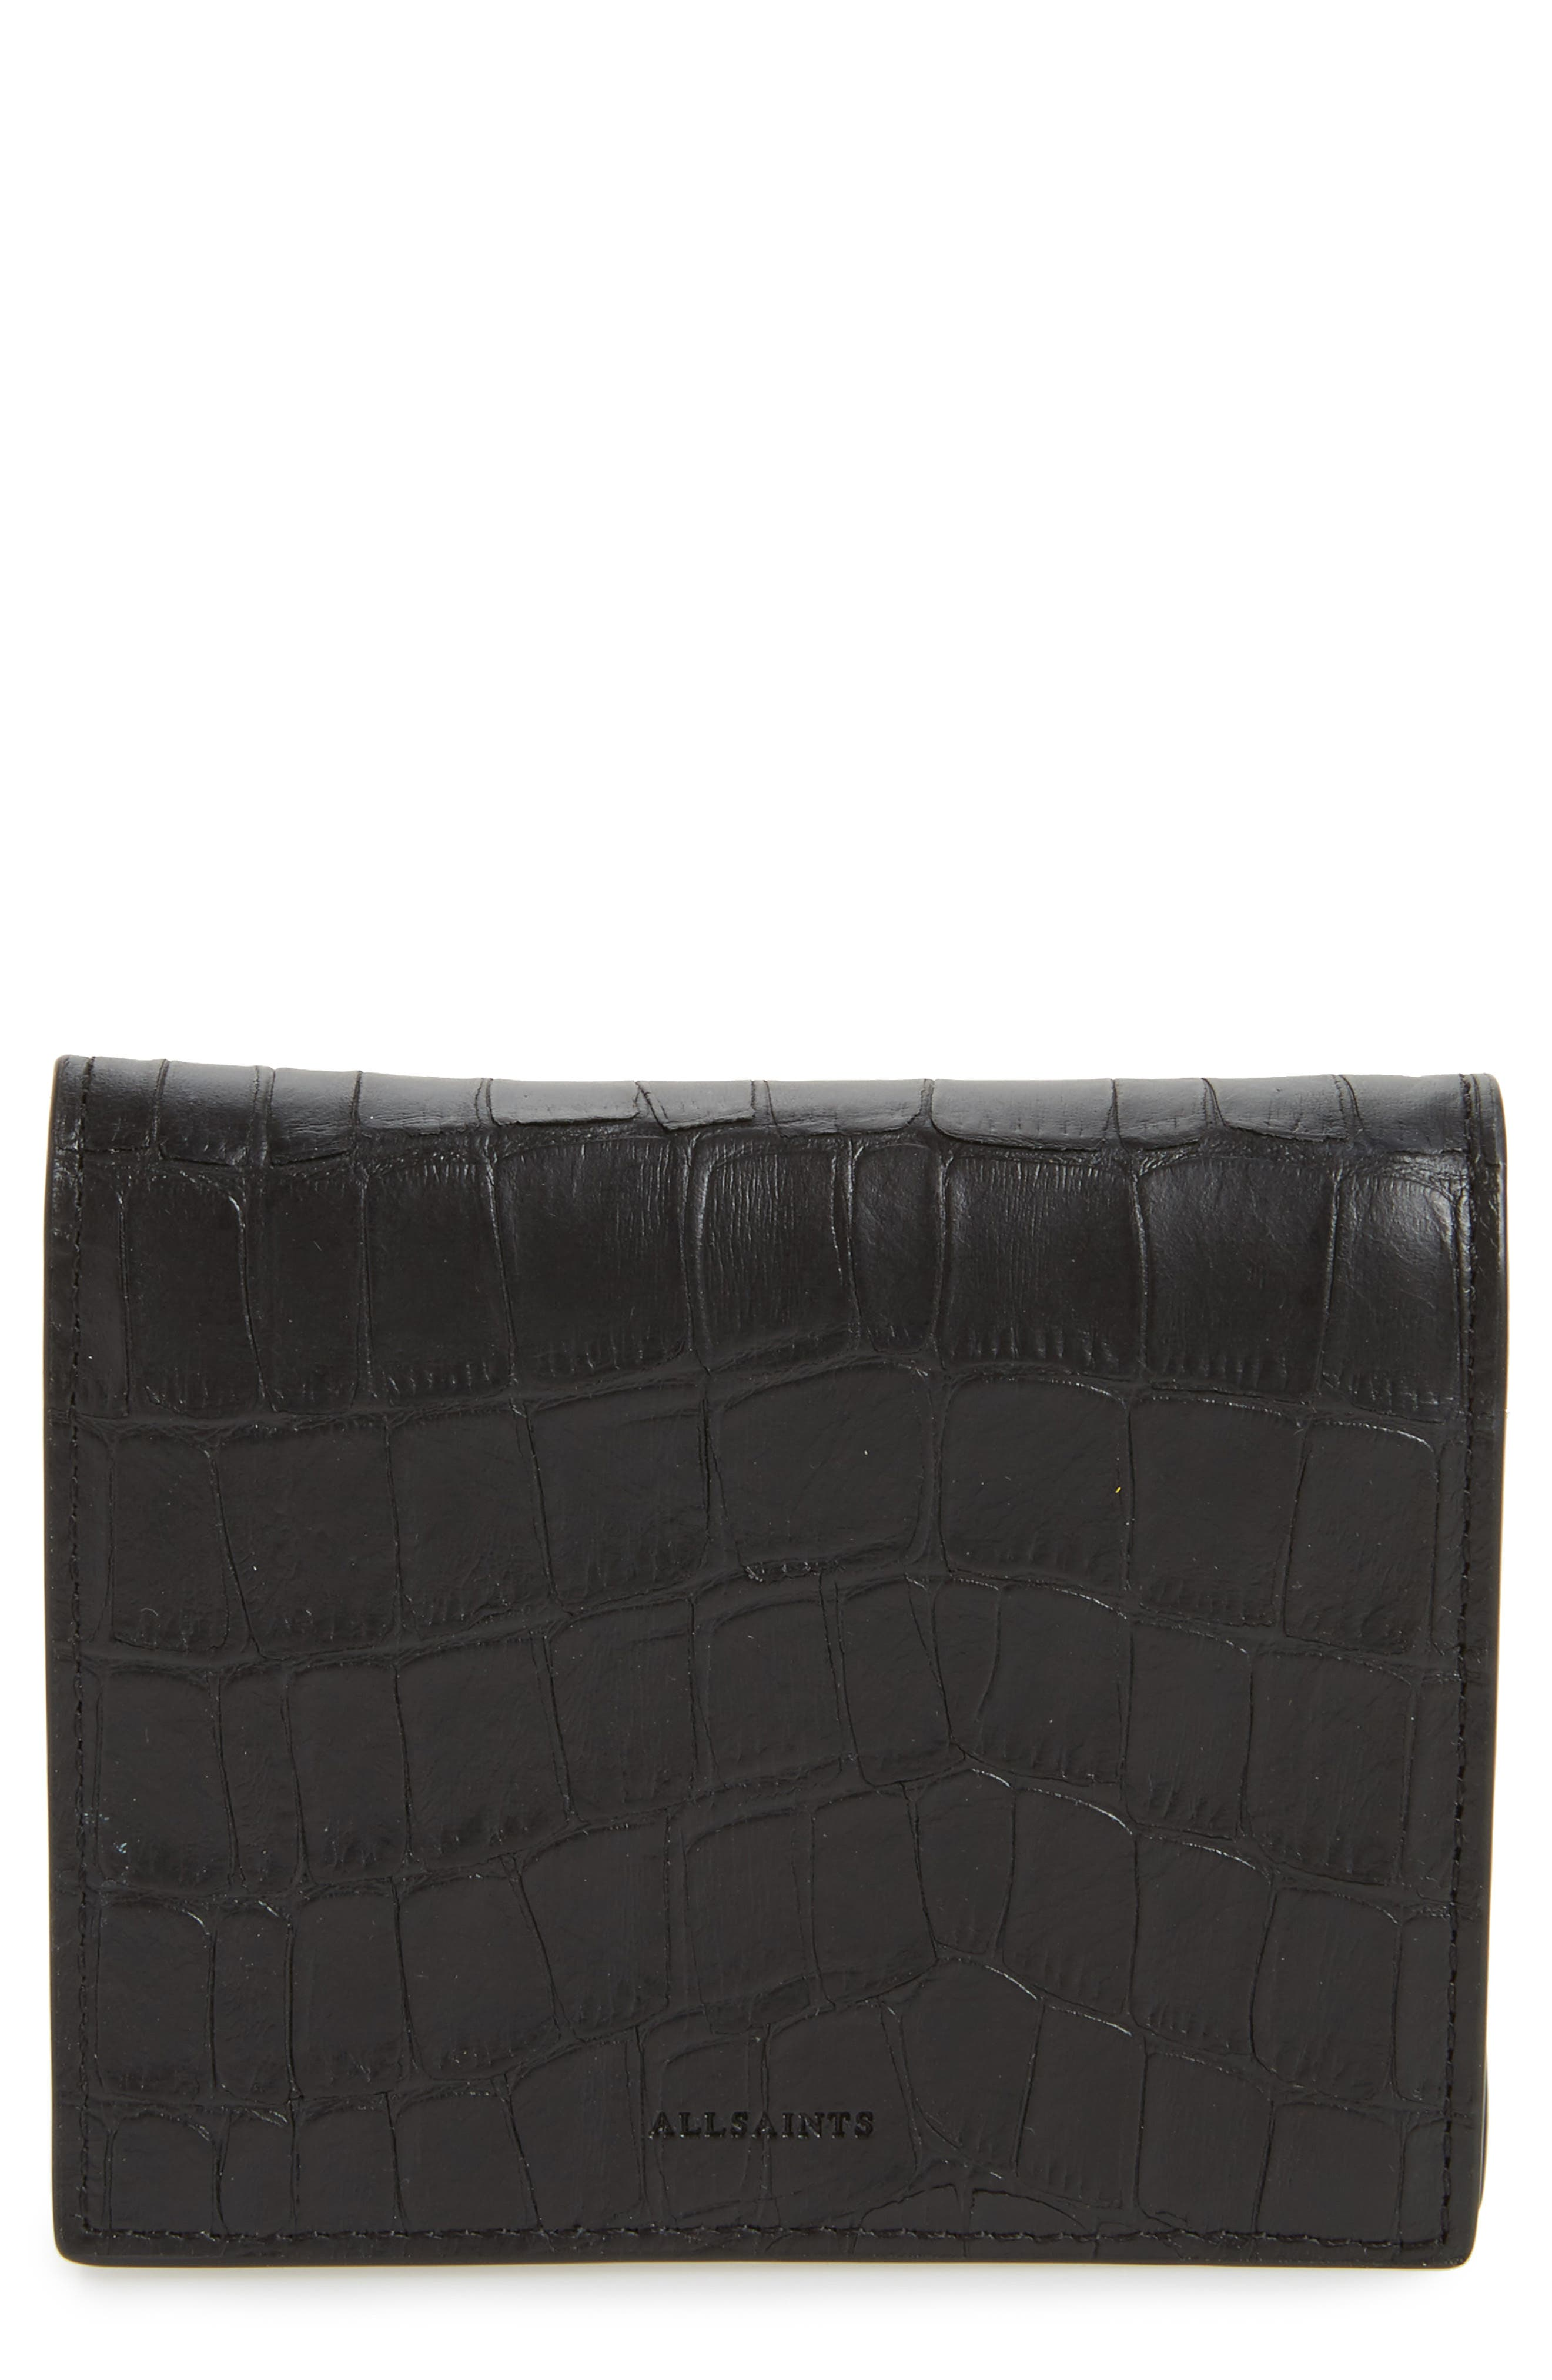 Alternate Image 1 Selected - ALLSAINTS Small Keel Croc Embossed Leather Wallet